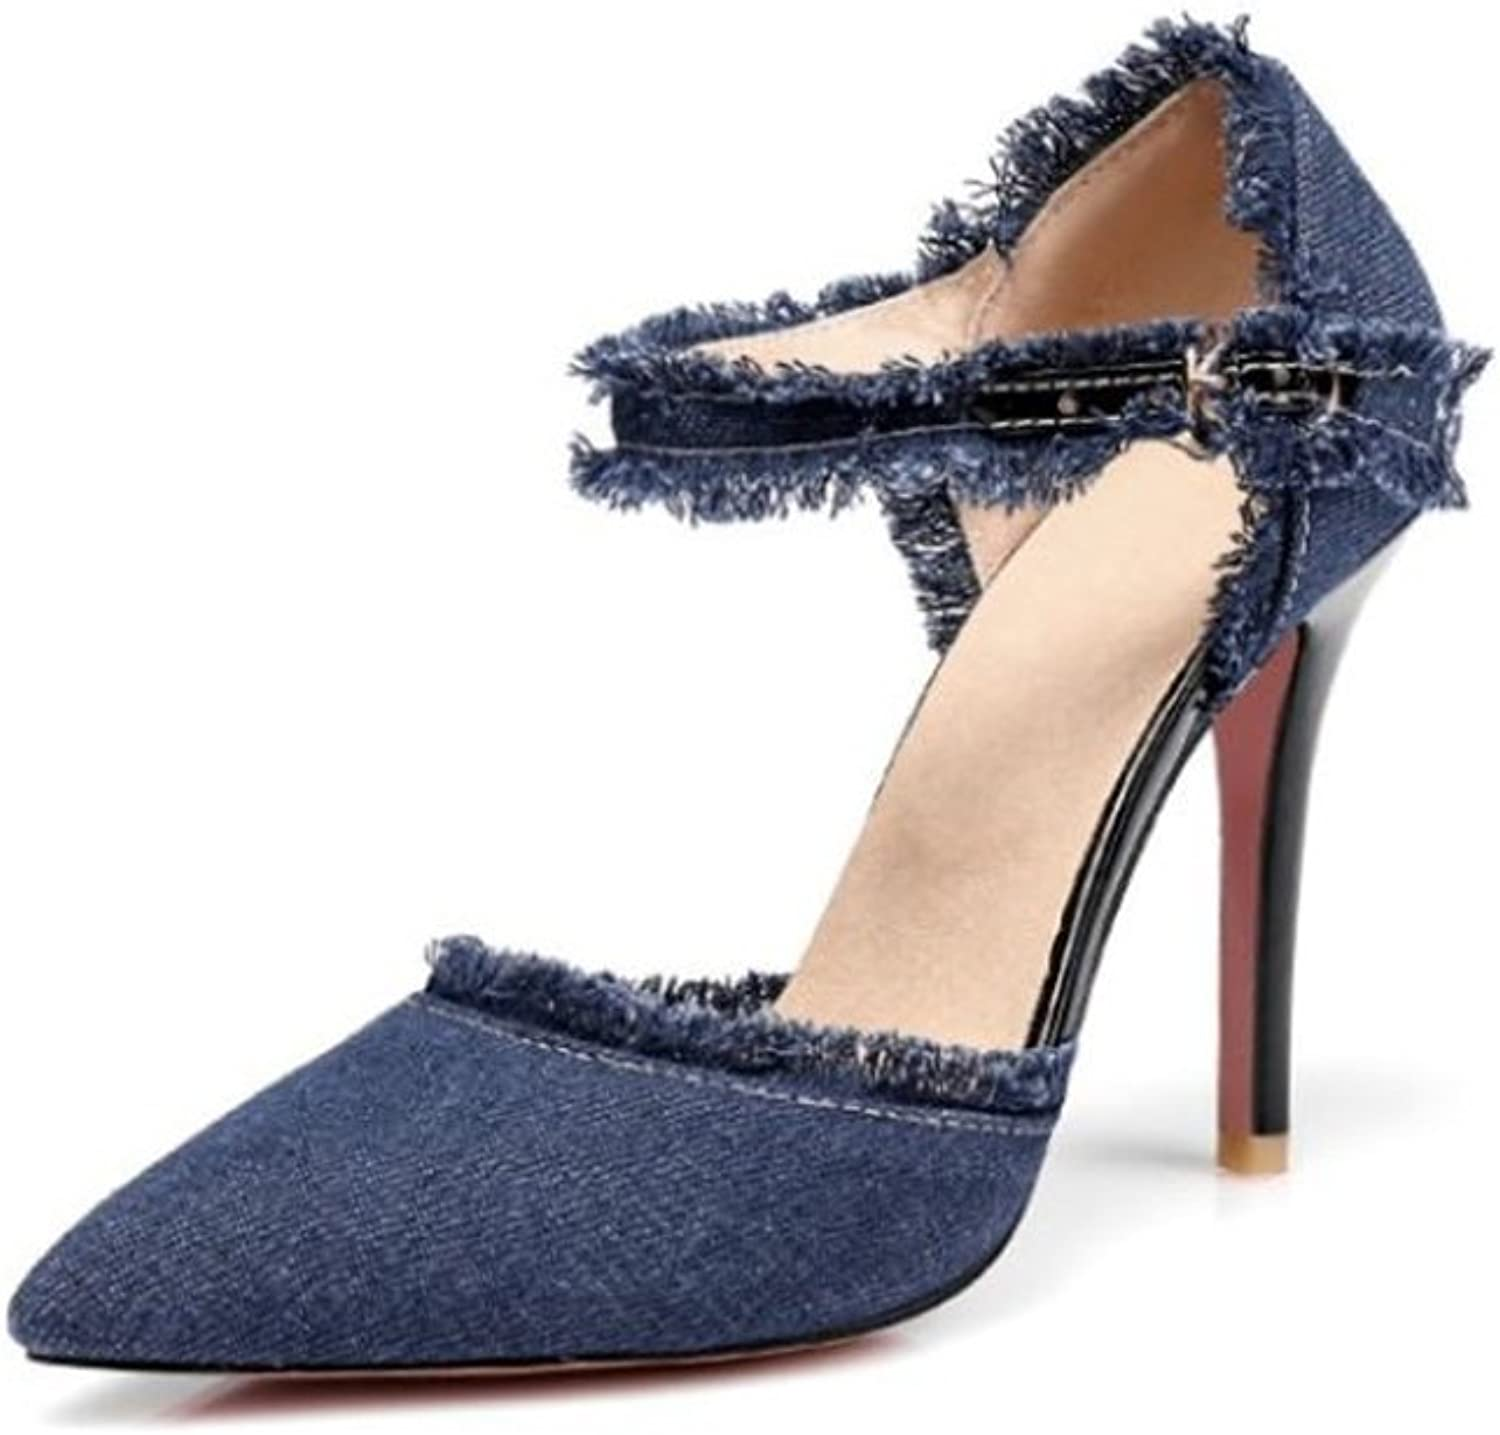 pink town Women Fashion Distressed Denim Open Toe High Heel Pointed Cowboy Mid Calf Sexy high Heel shoes